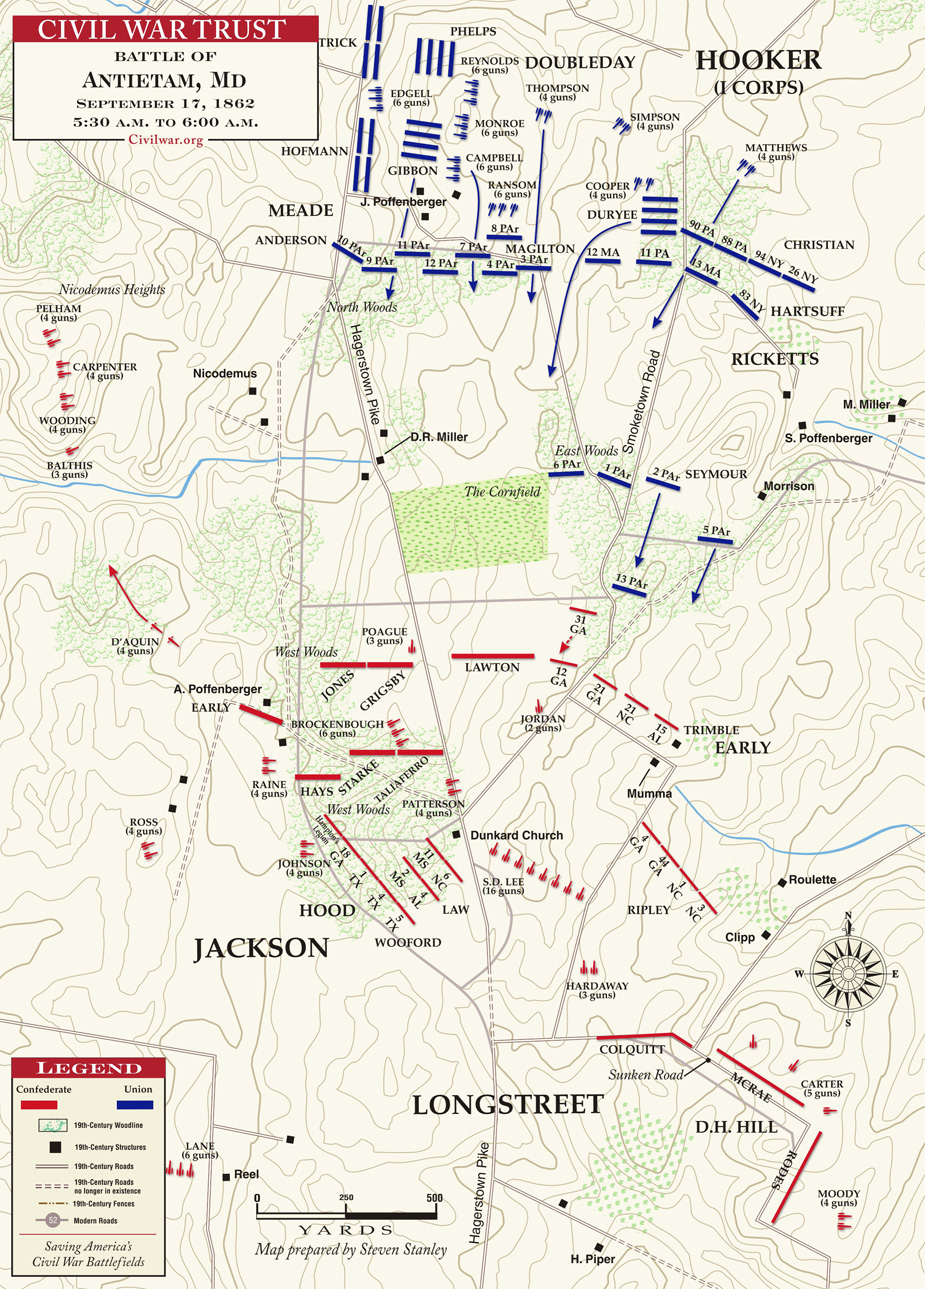 reasons for and consequences of the battle of antietam fought on september 17 1862 The civil war battle of antietam when: september 17-18, 1862 where: up until the battle of antietam the confederate army had been primarily on the defensive.